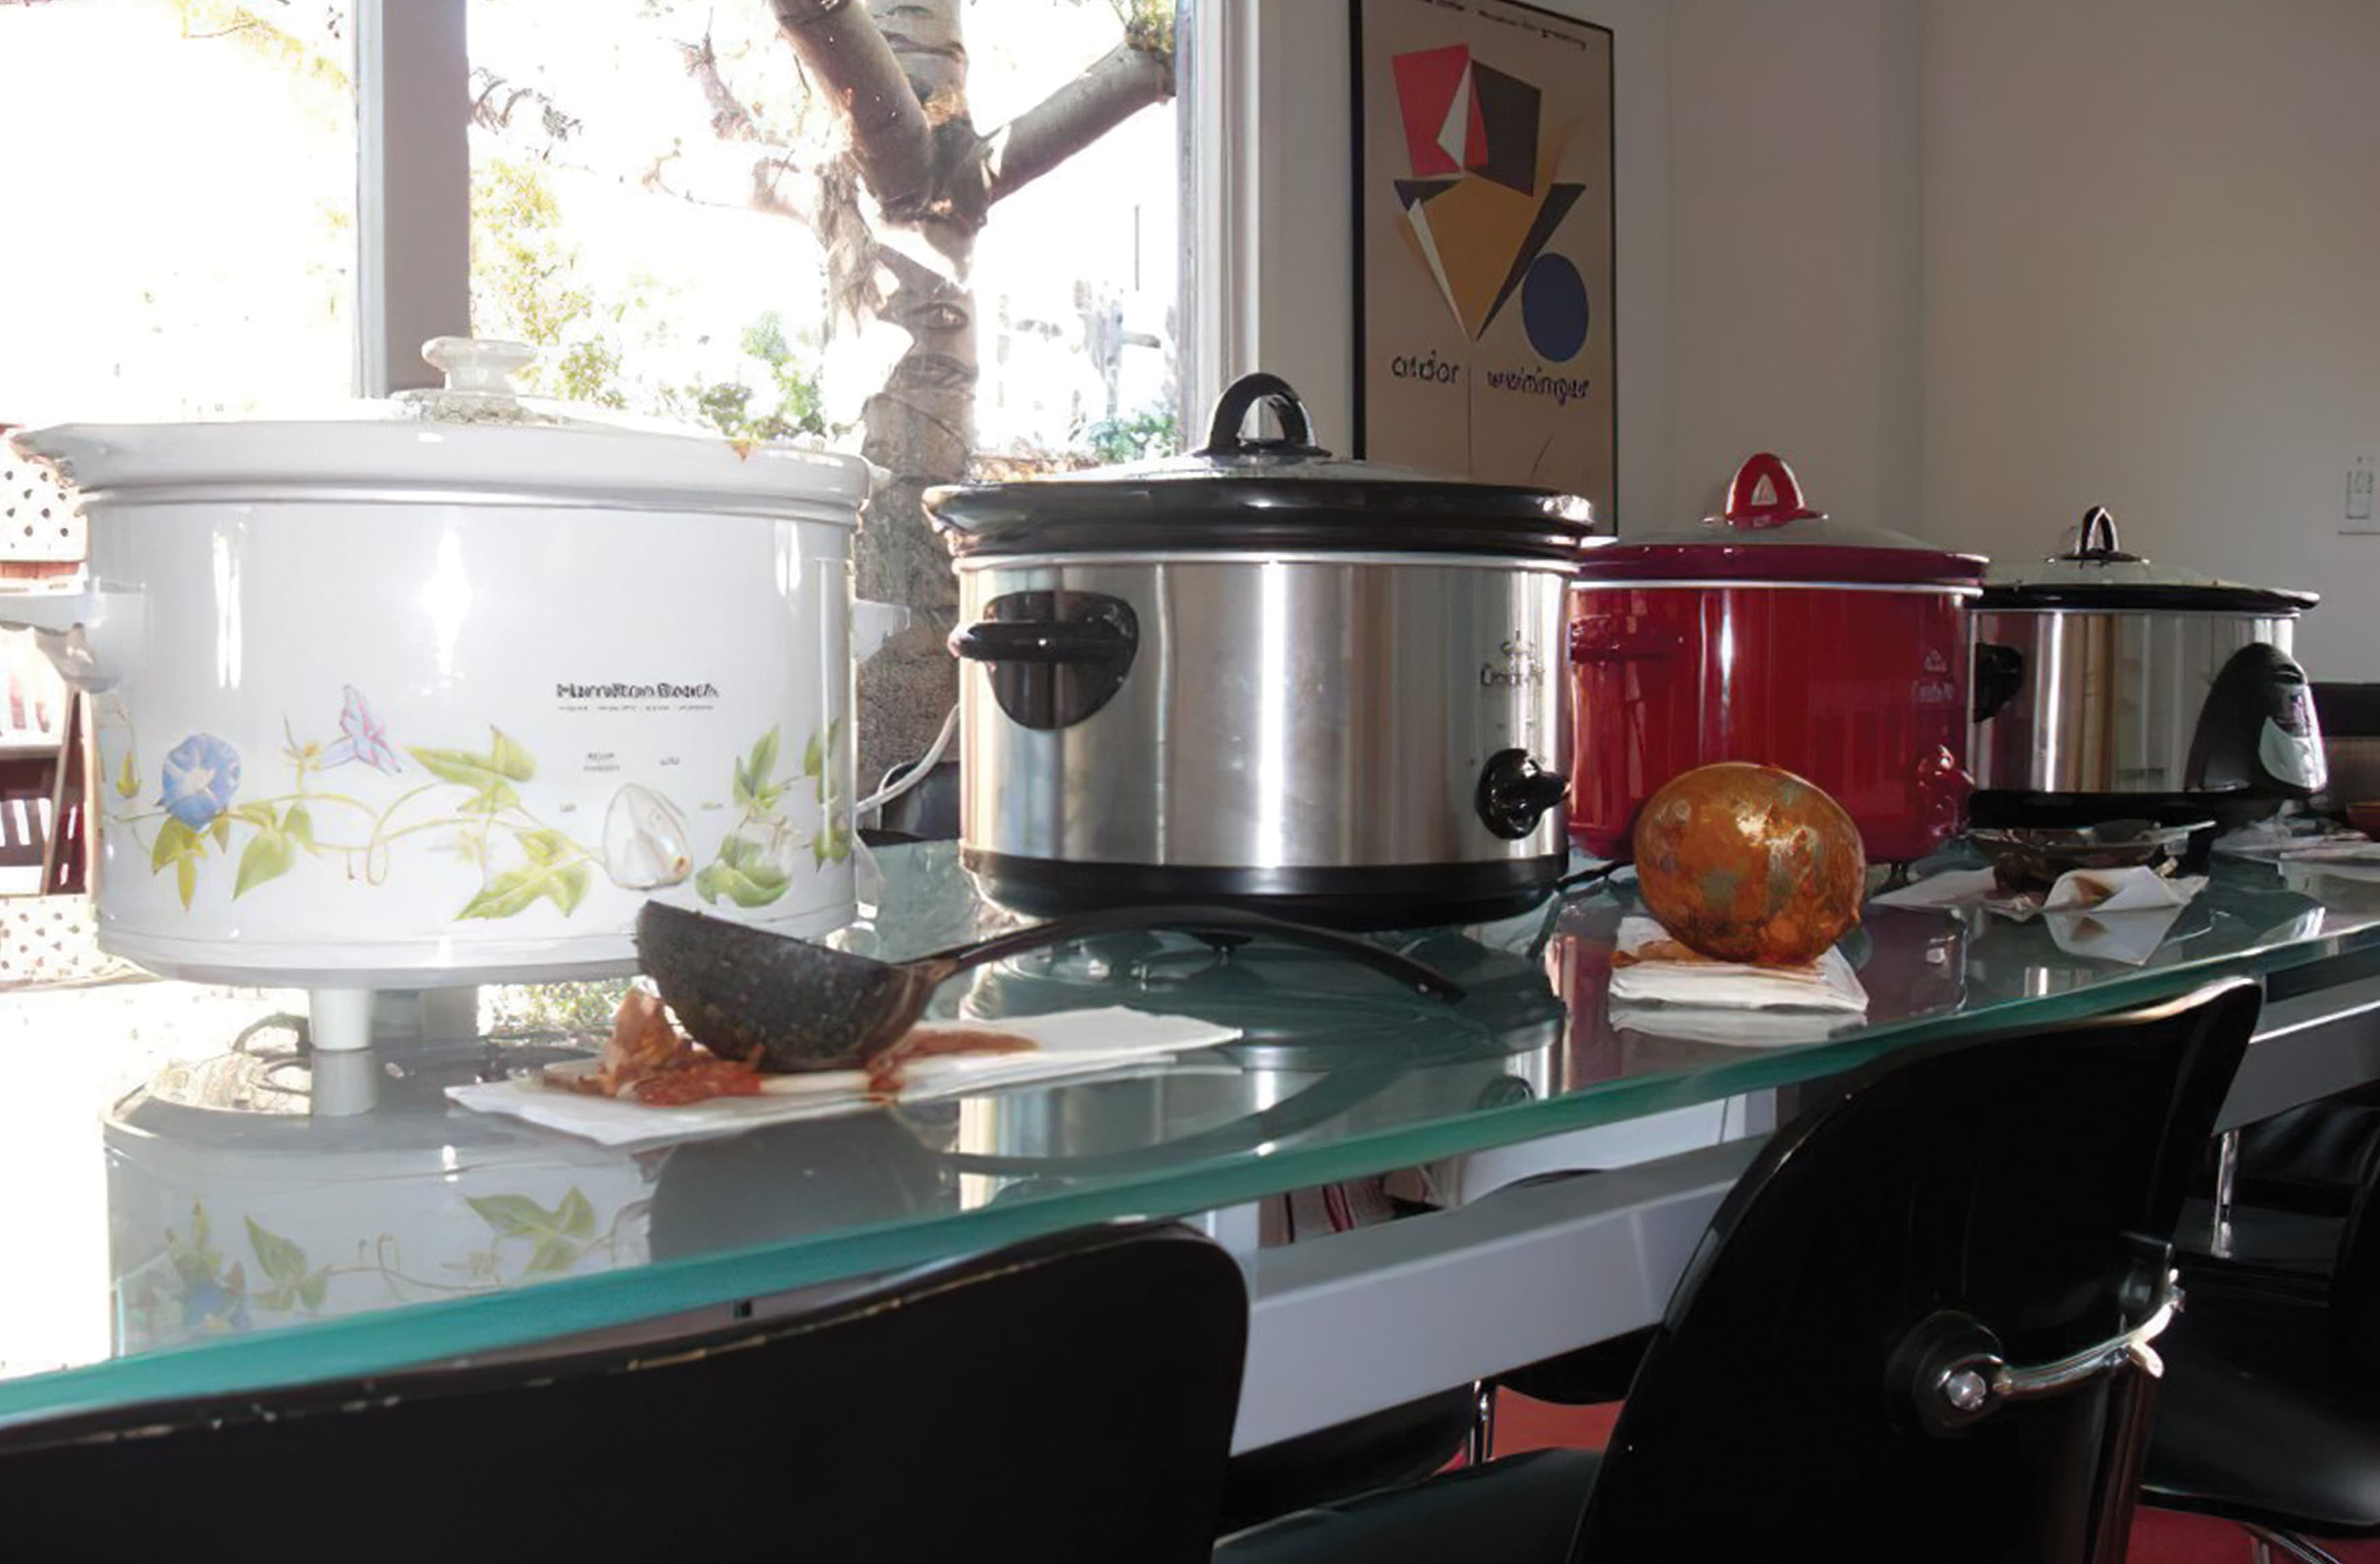 A photograph of some slow cookers taken during 2nd Annual RSM Chili Cook-Off.